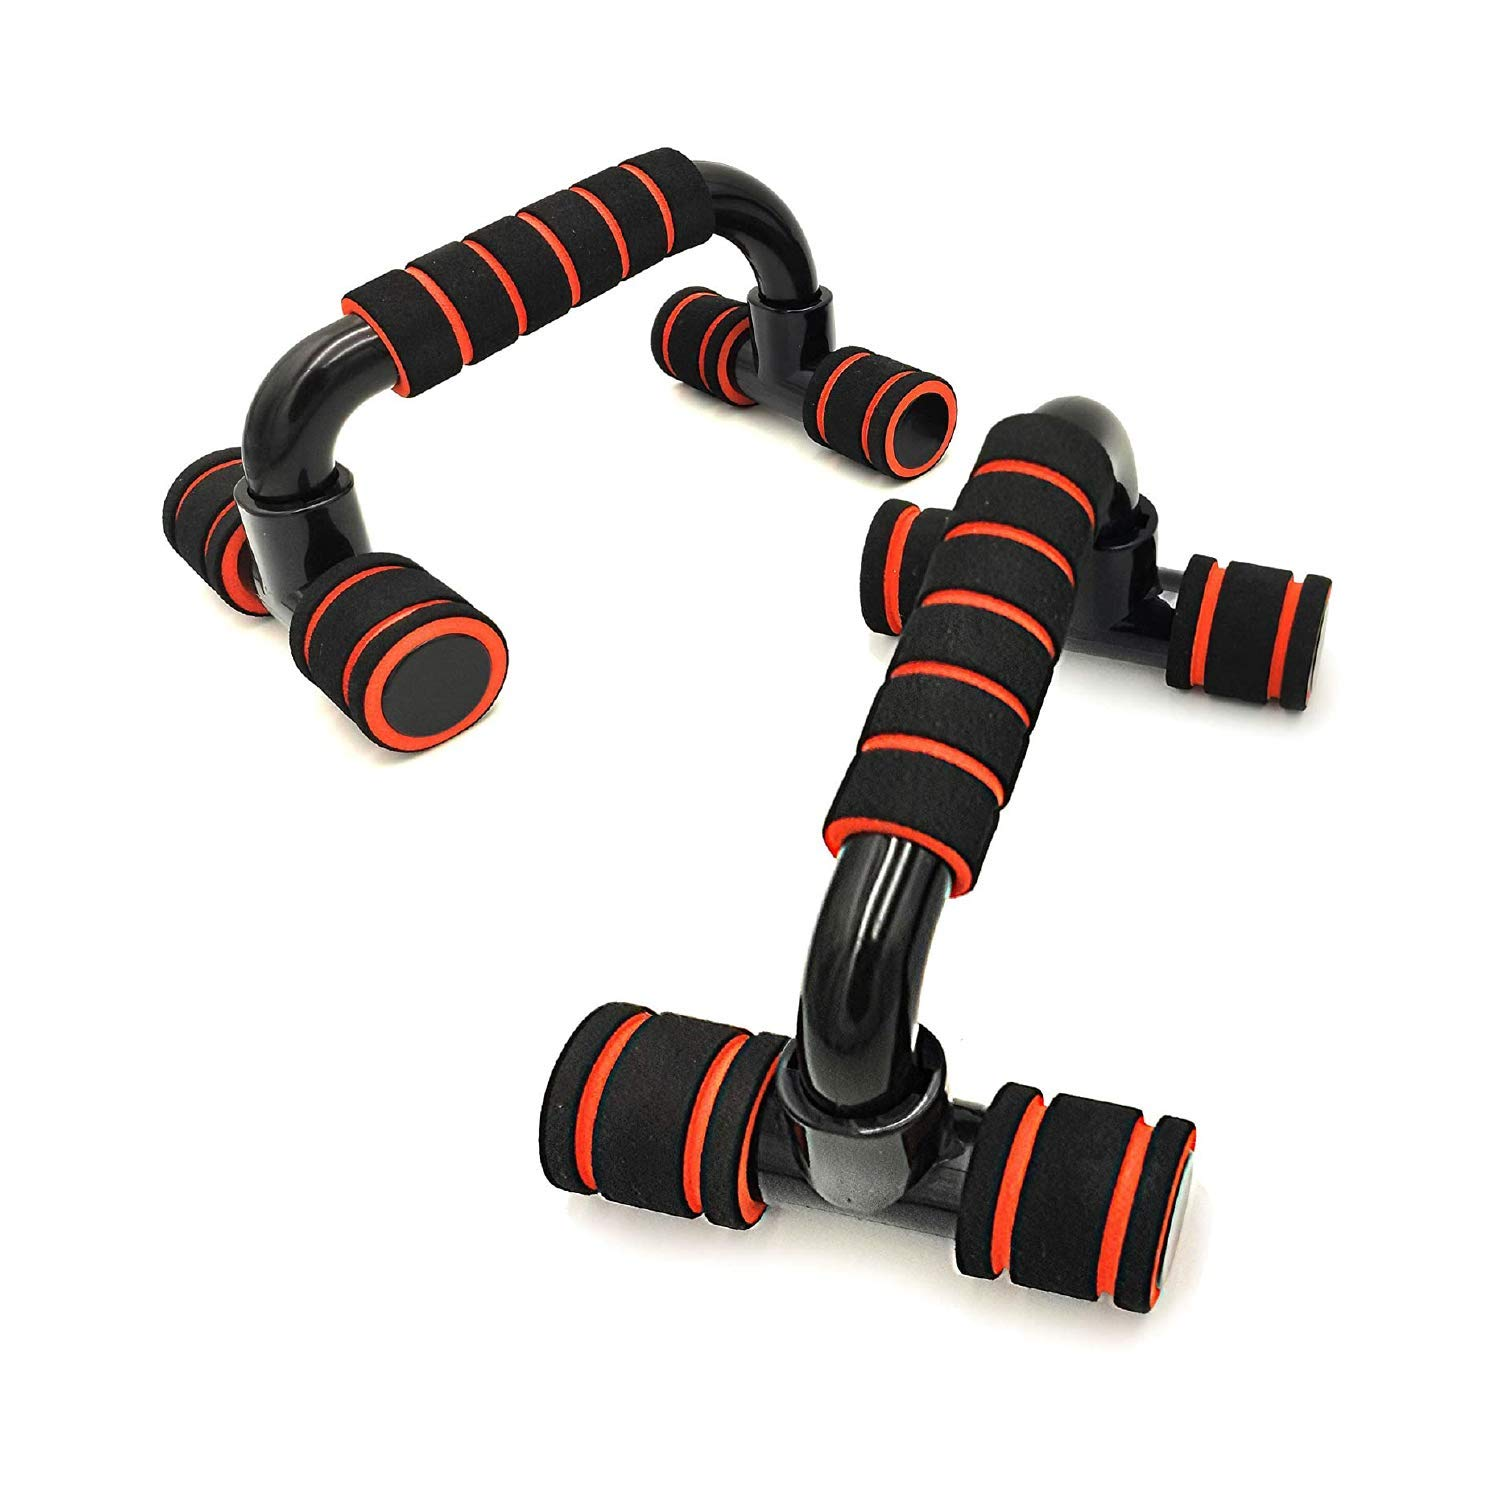 Shop Stoppers Pushup Bar Stand for Gym Home Exercise, Dips/Push Up Stand for Men Women